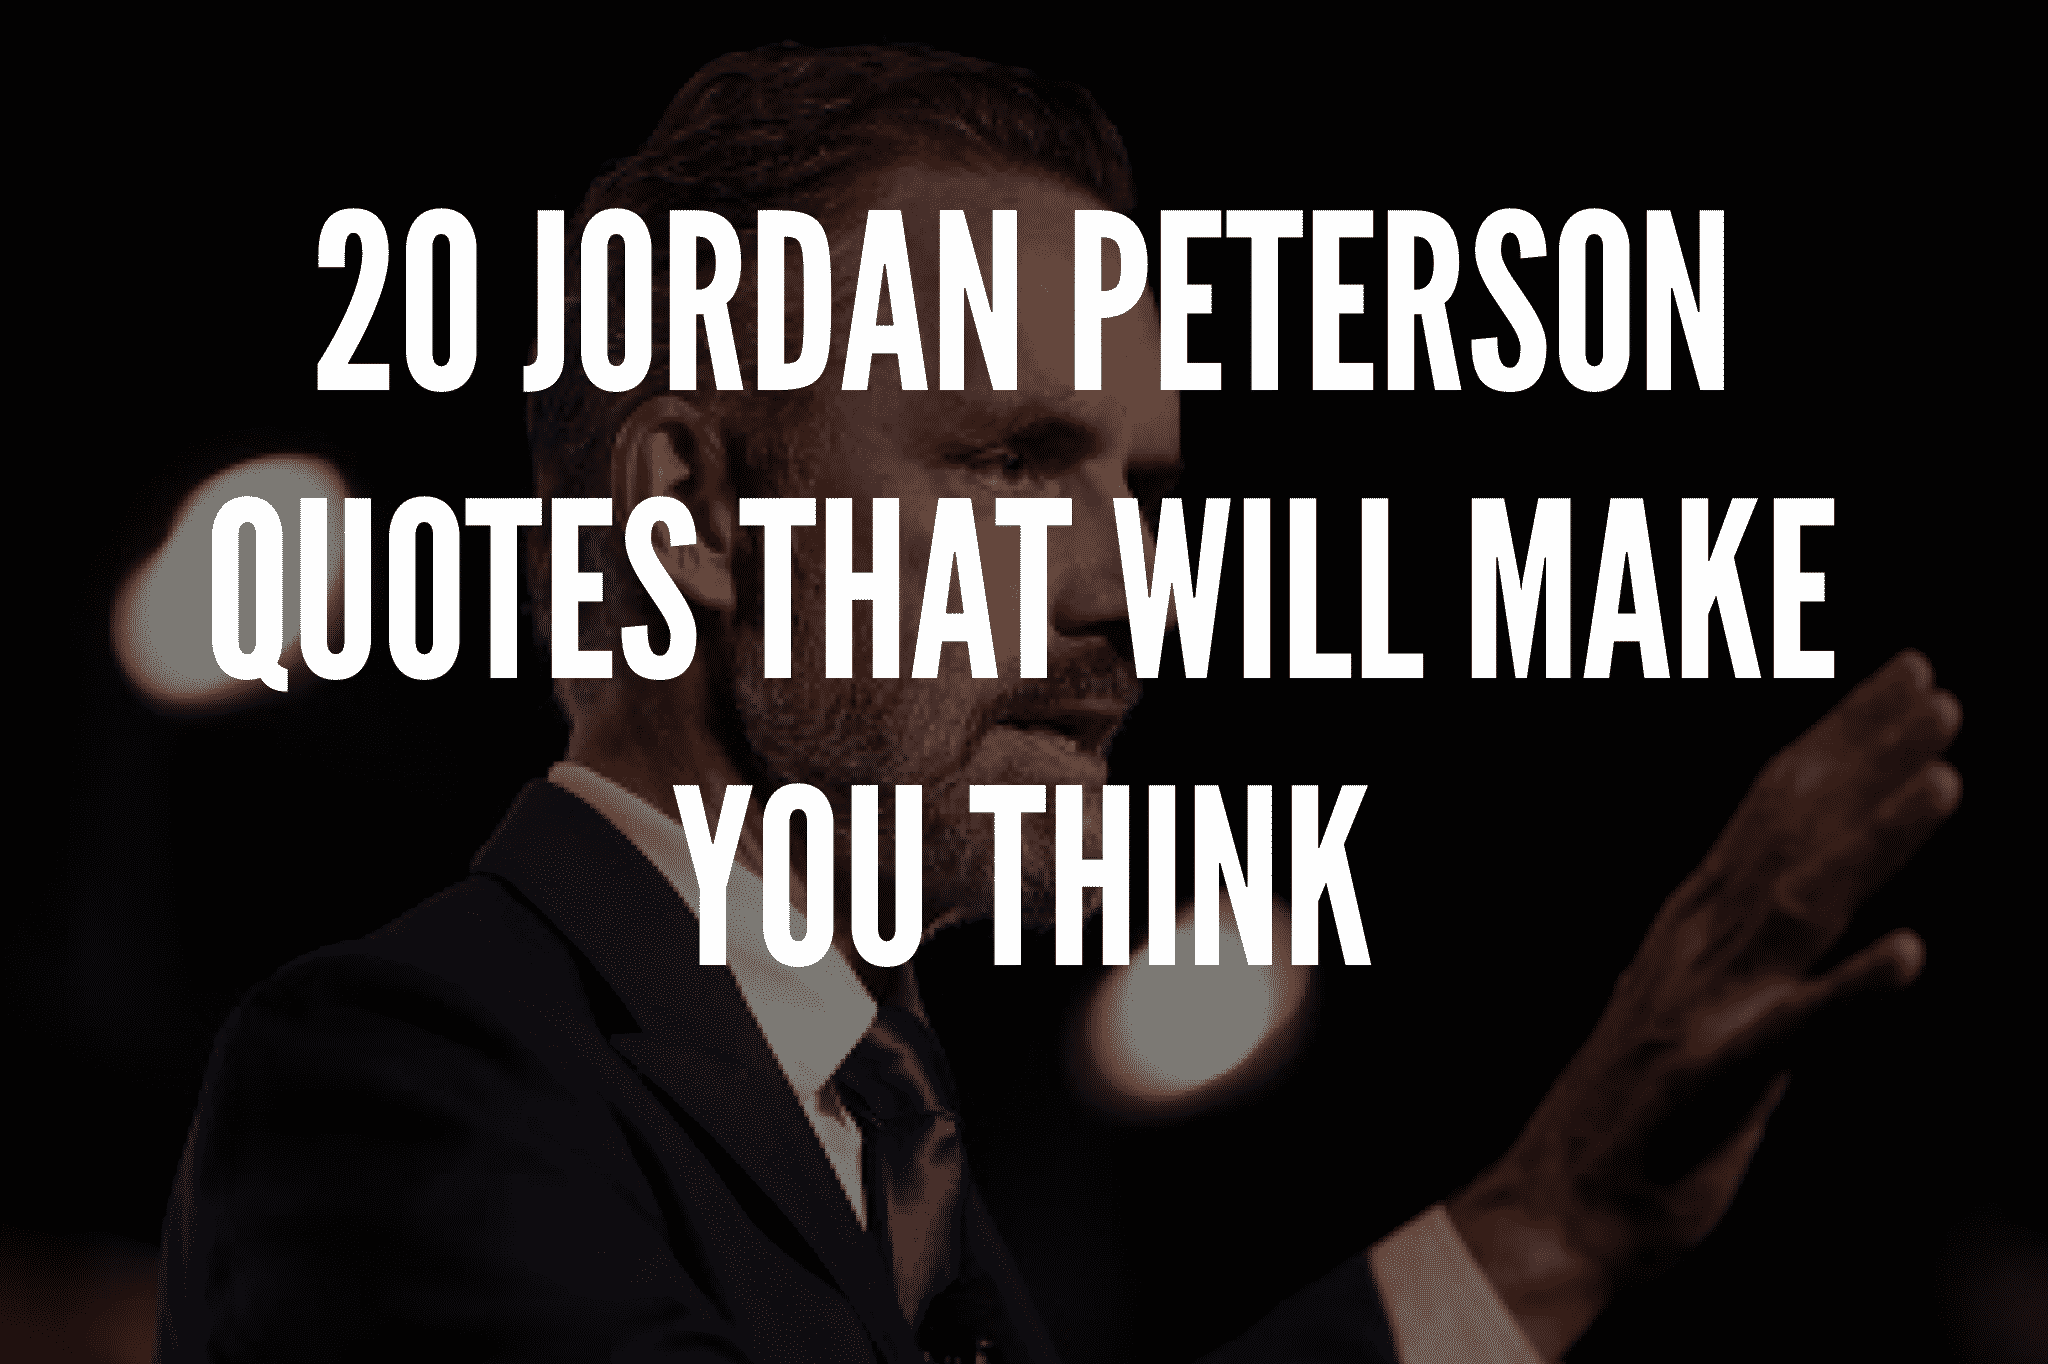 20 Jordan Peterson Quotes That Will Make You Think